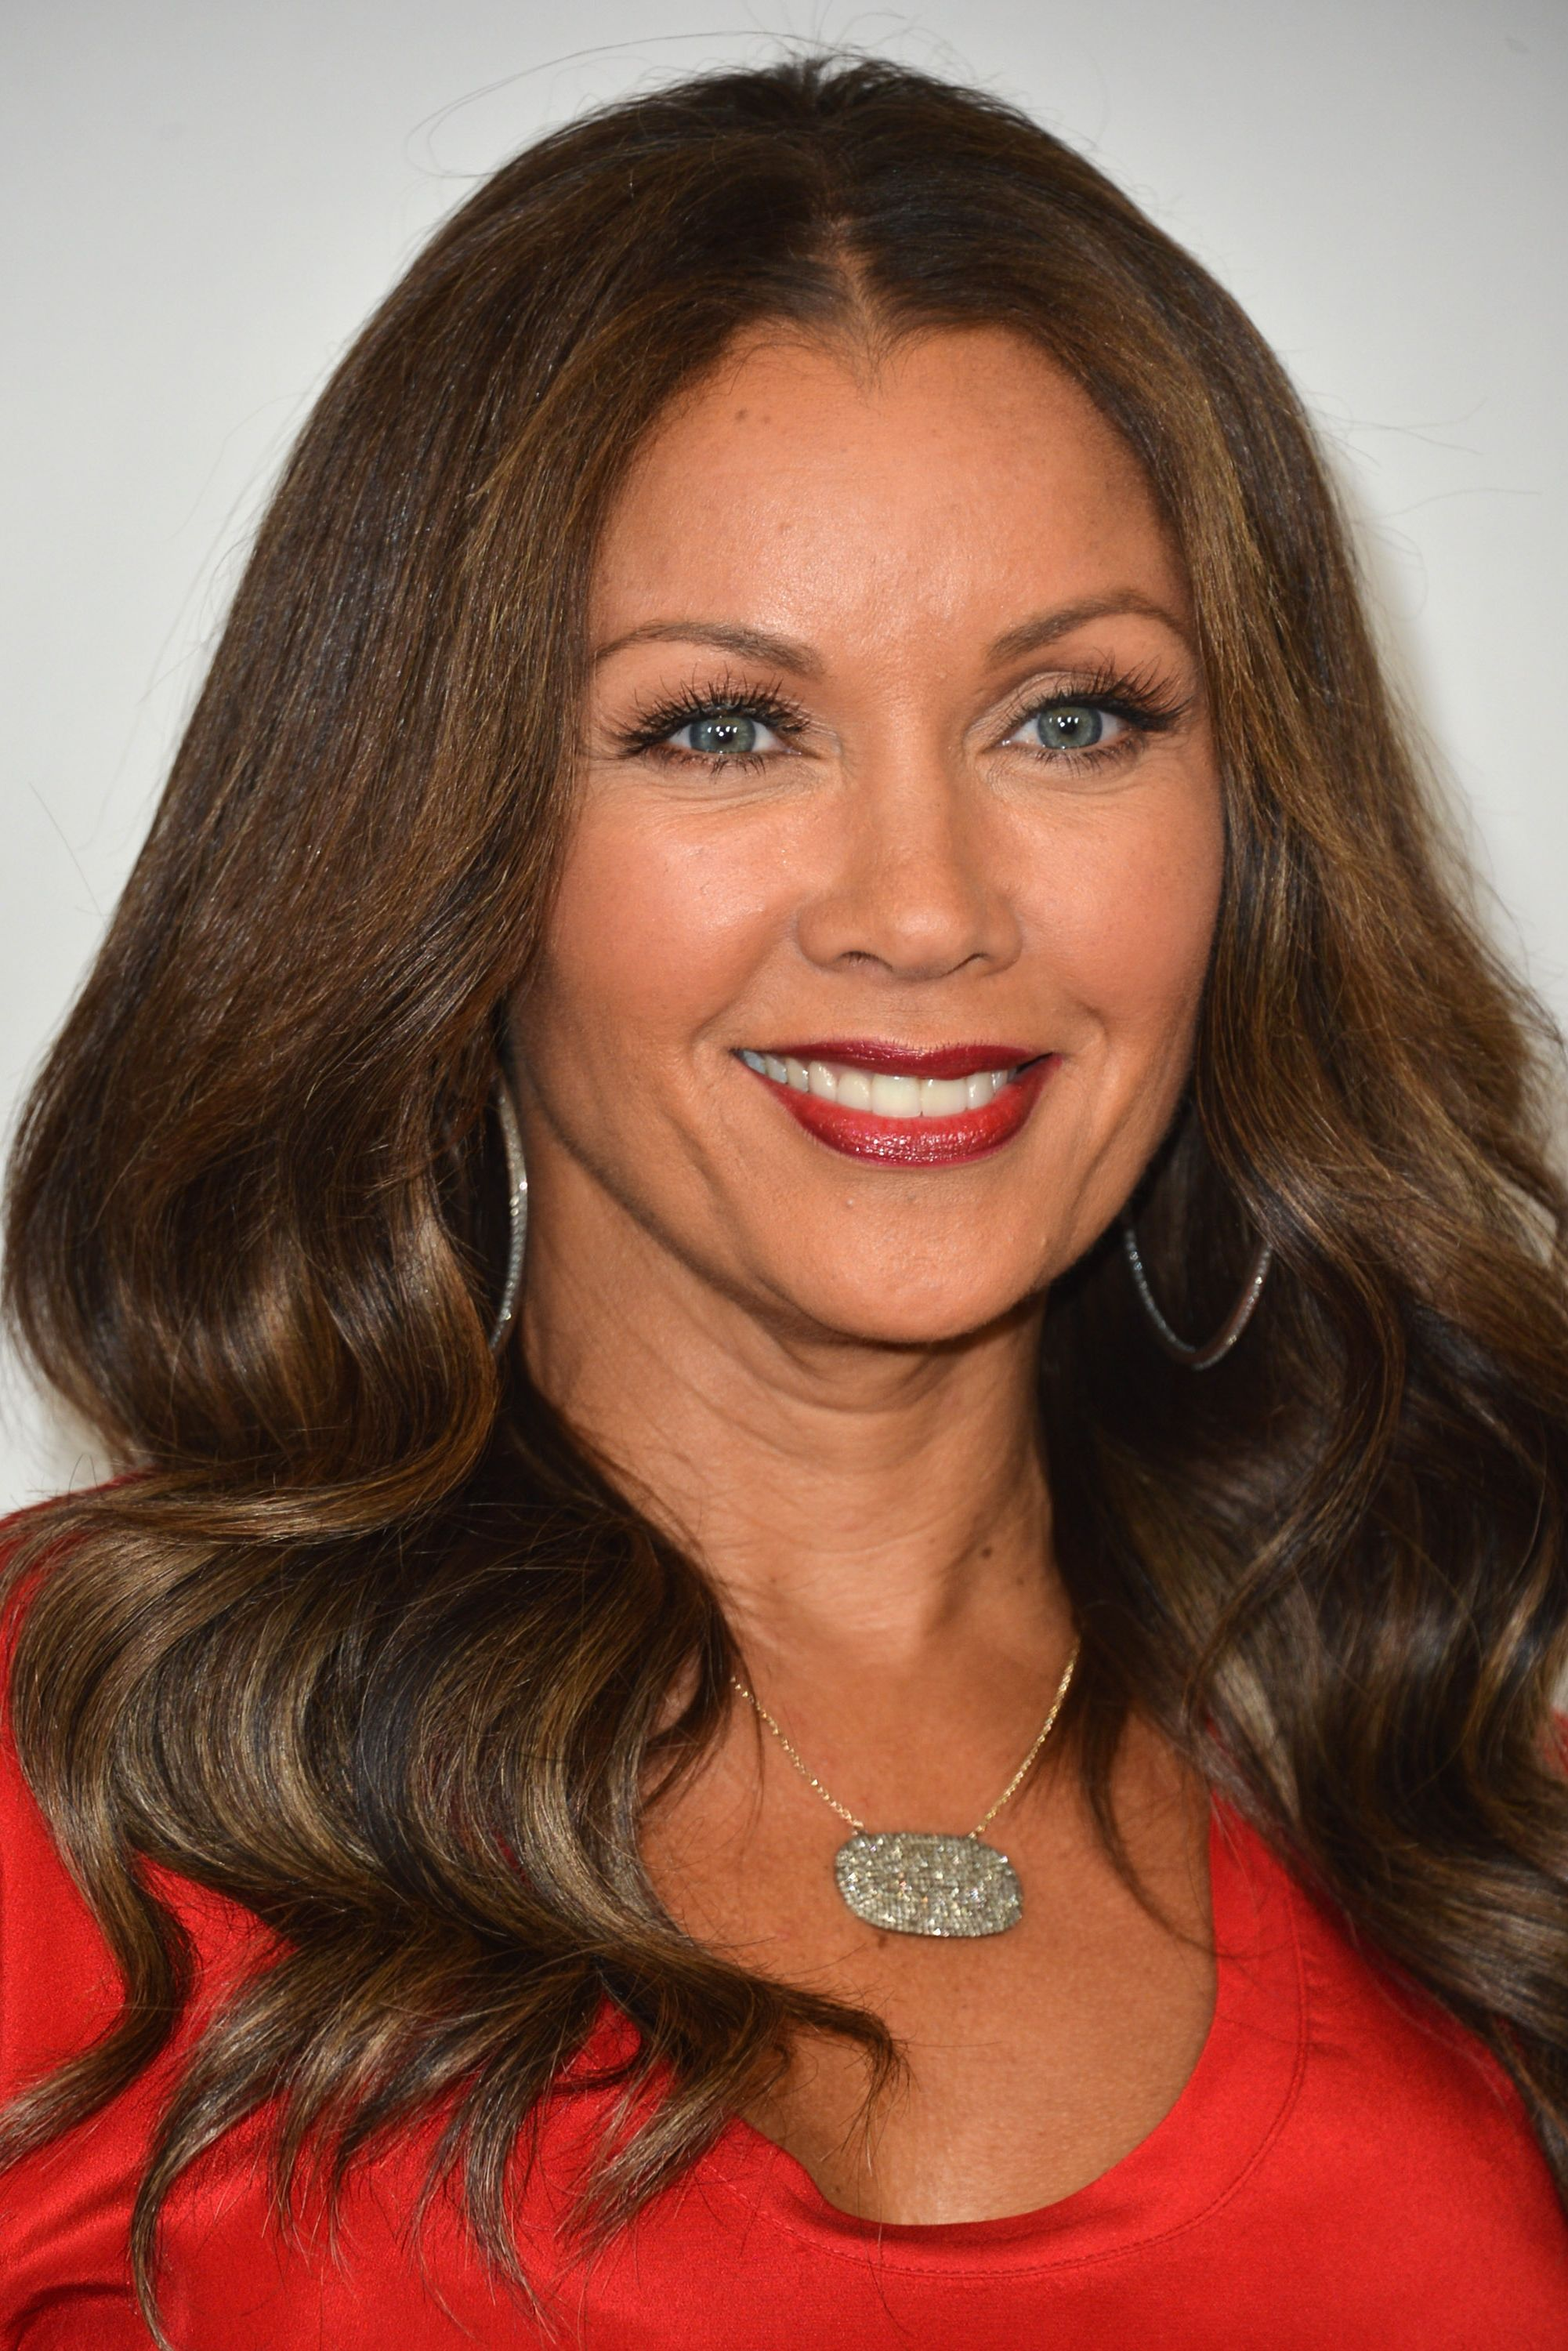 """Vanessa Williams In a November 2008 People Magazine article, former Miss America Vanessa Williams, who was 45 at the time, was asked if she used botox, and her response was: """"I use it very sparingly. I want to look natural."""""""